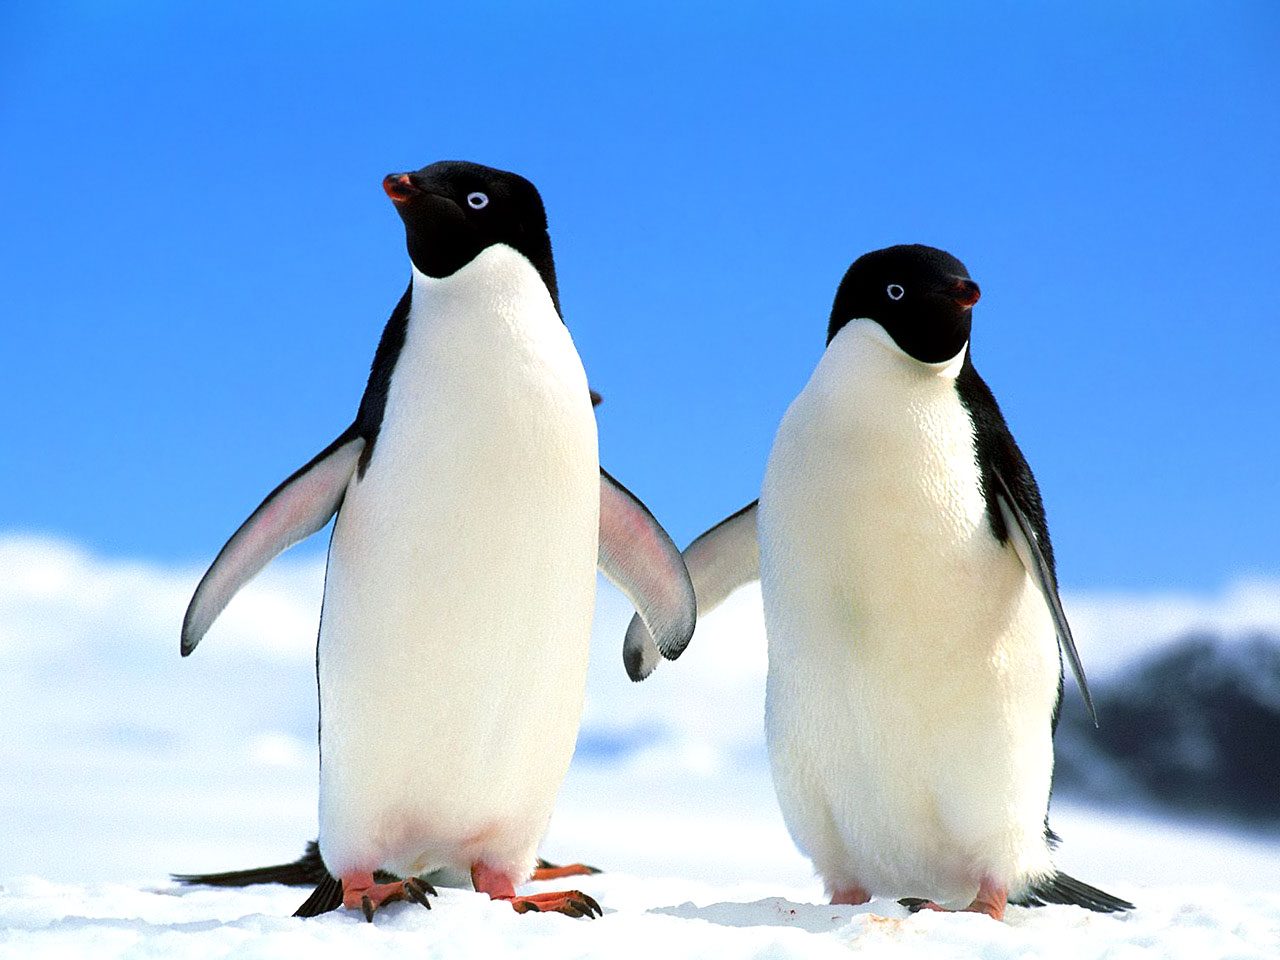 Cute Baby Penguins Wallpaper Images amp Pictures   Becuo 1280x960